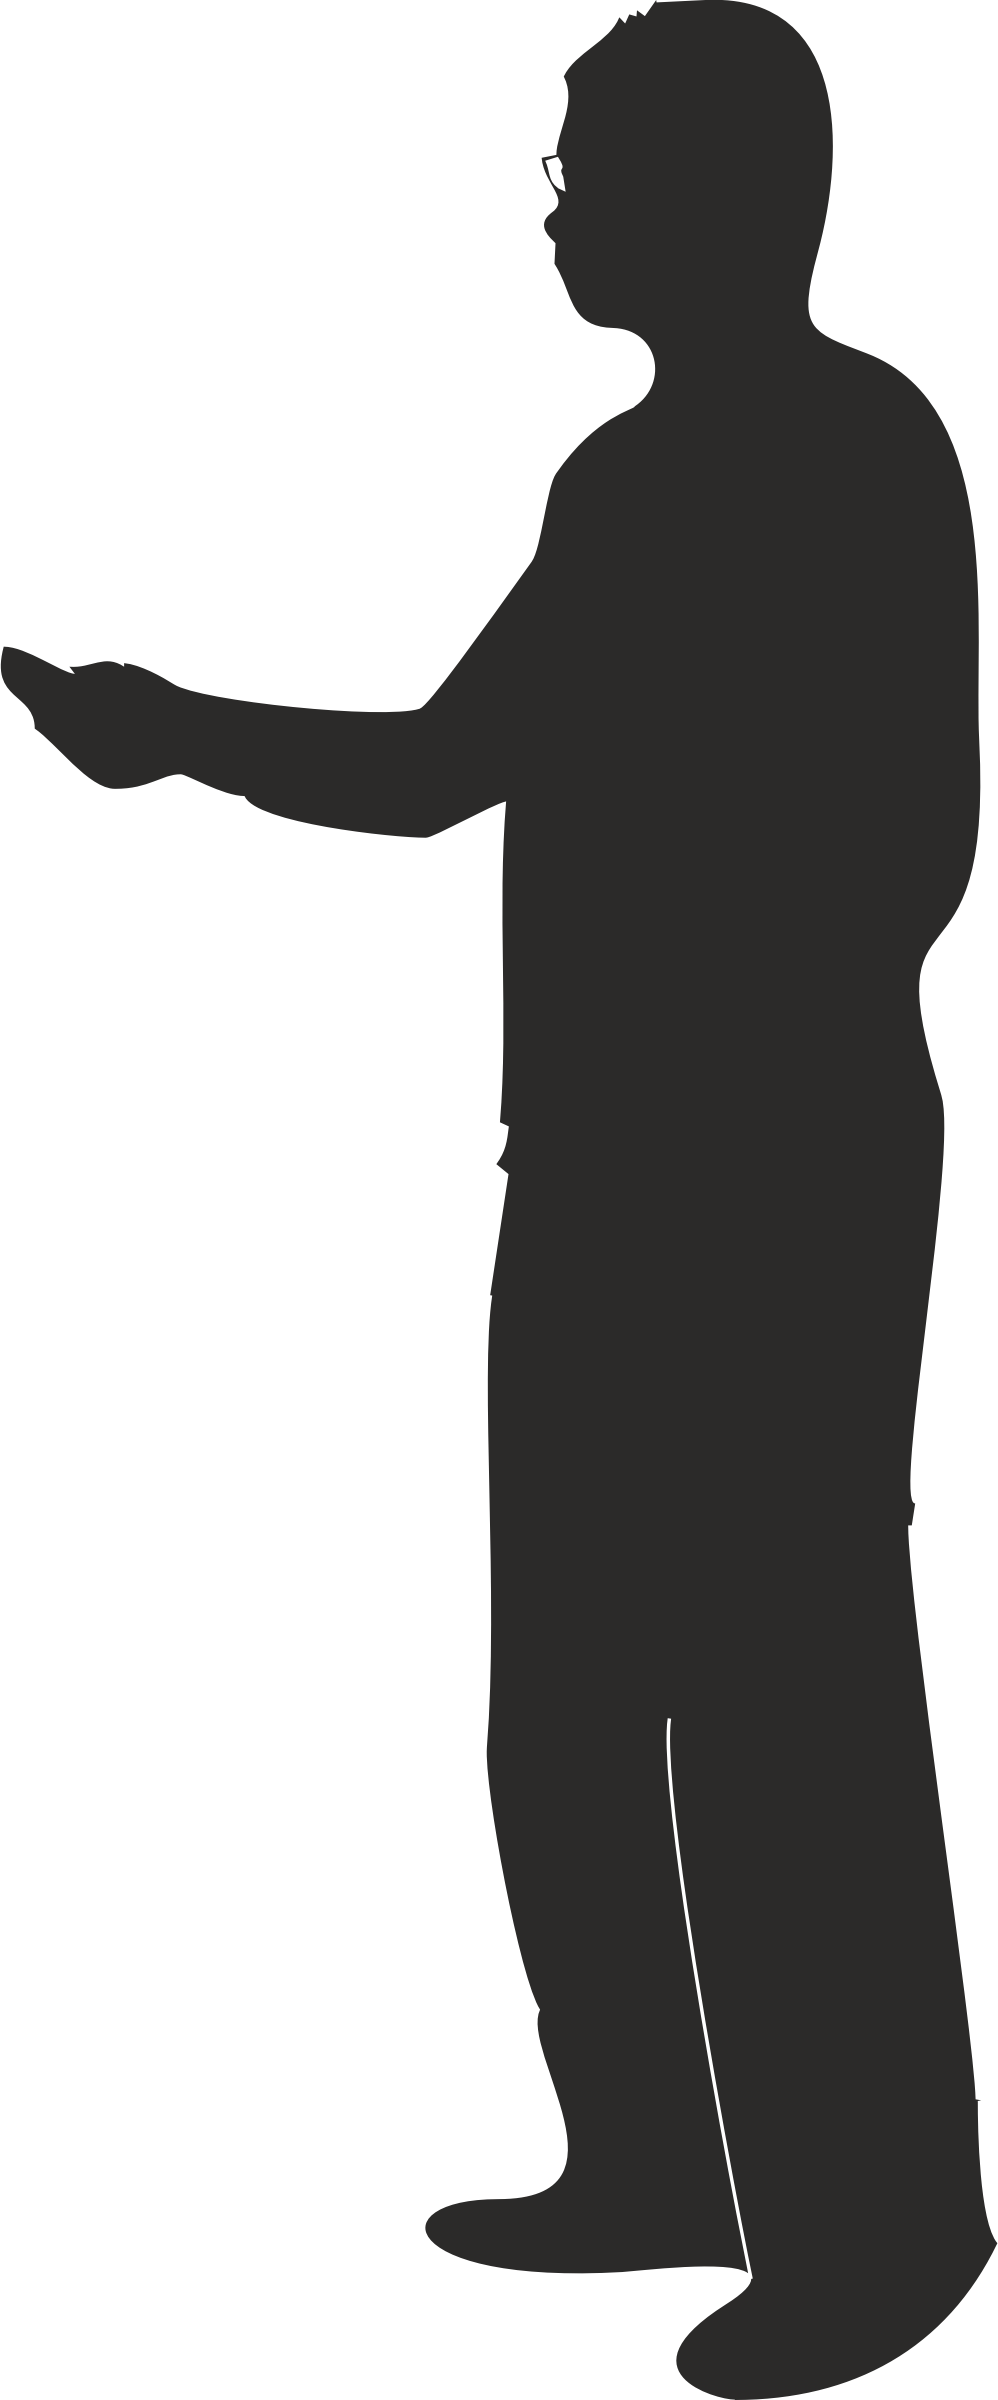 People pointing png. Clipart male silhouette presenting